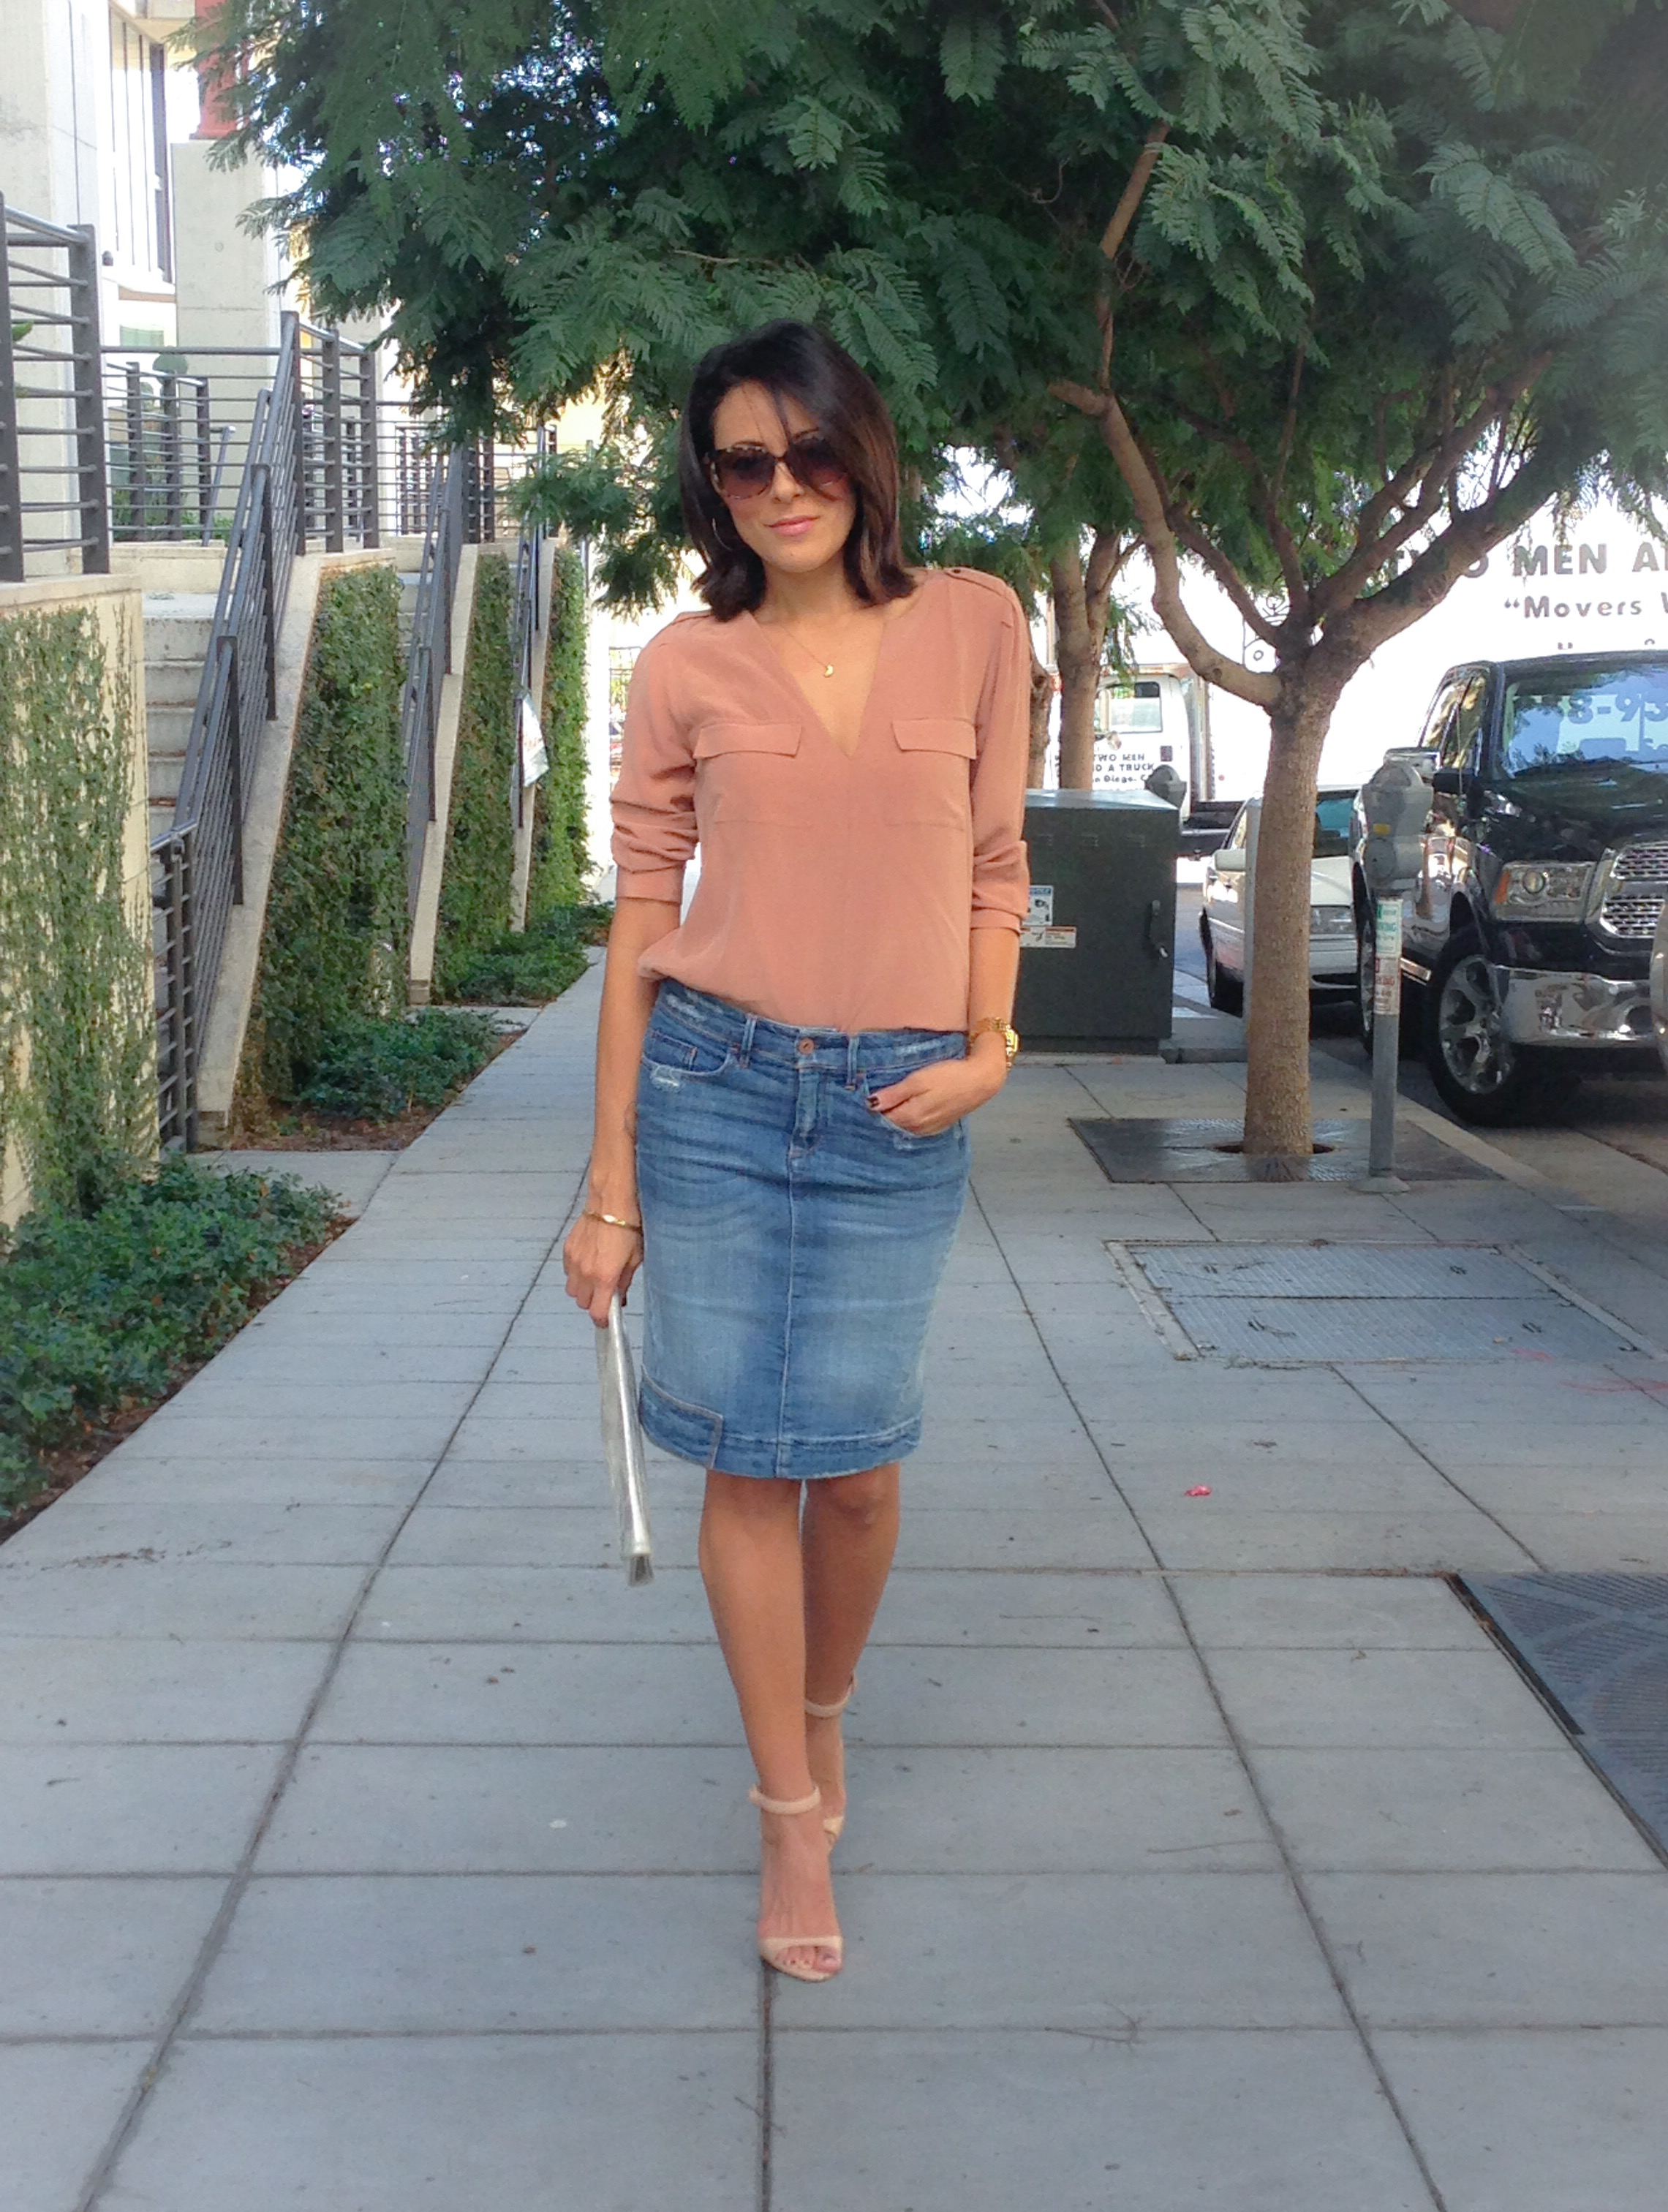 Blouse similar here $228  |  Watch  | Clutch  similar here $39  Sandals  similar here $119  |  Sunglasses